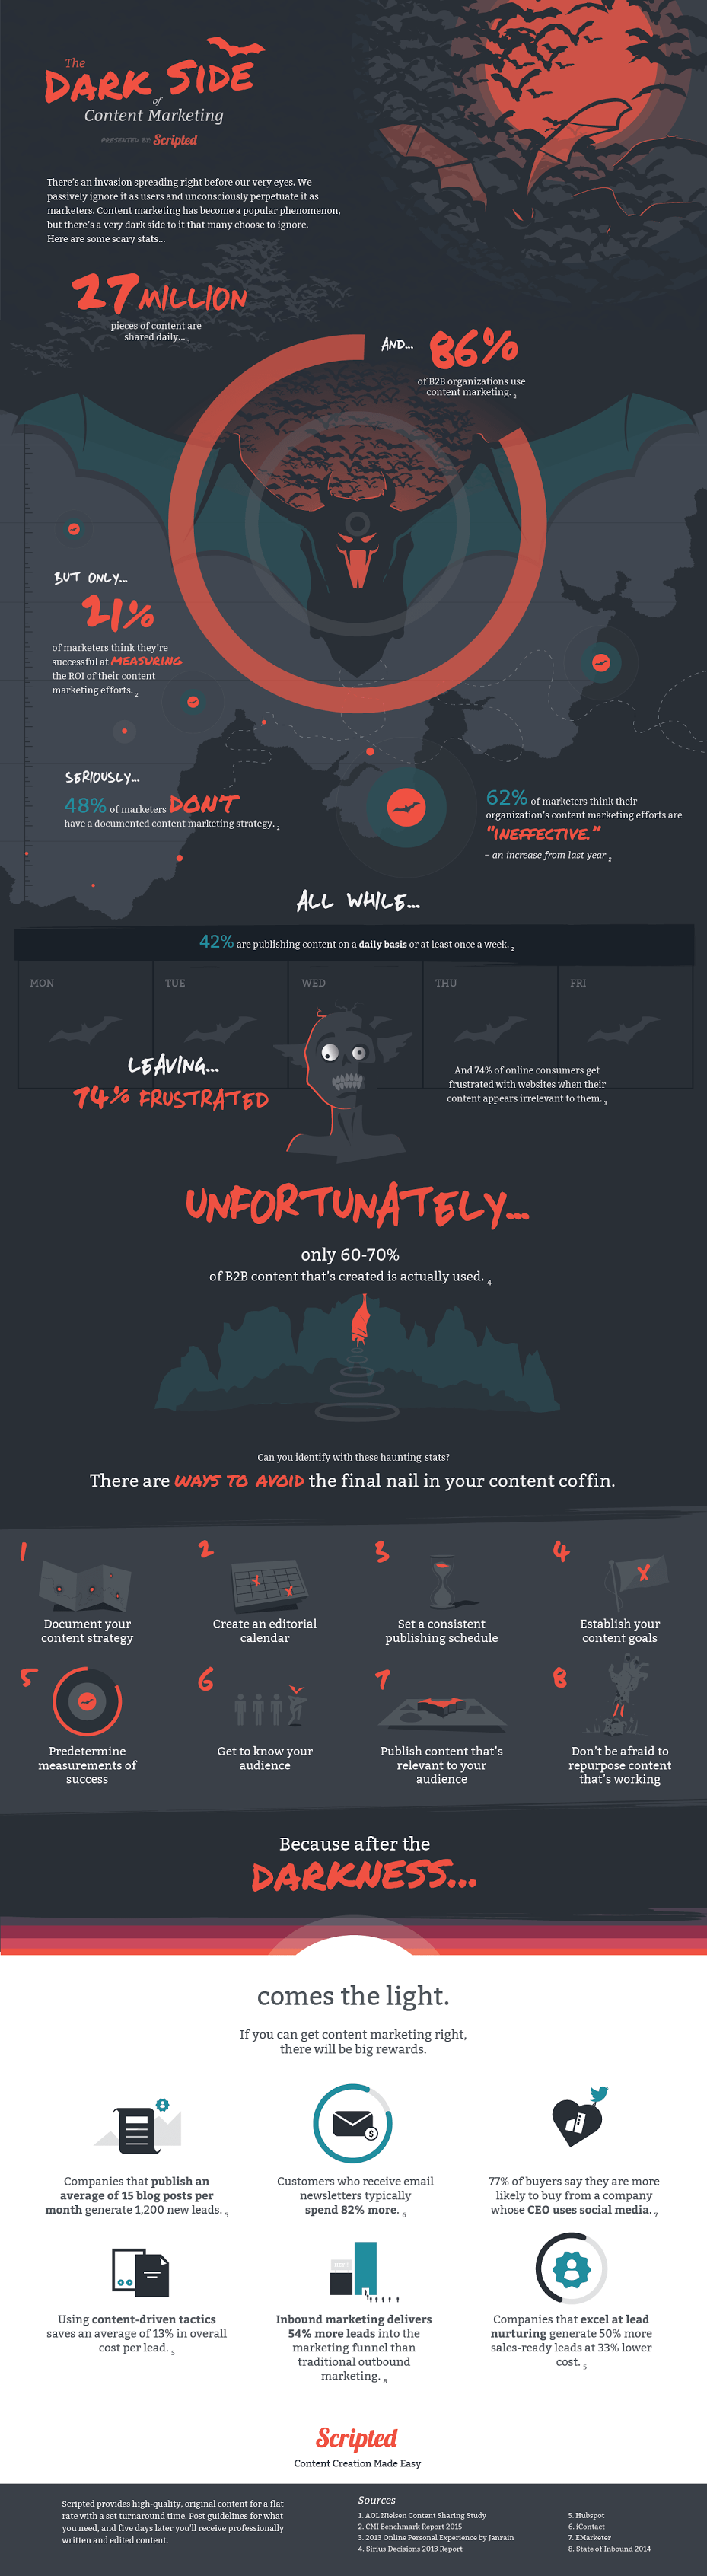 This infographic, looks at the especial part of content marketing that marketers are often hesitant to talk about: the dark side.